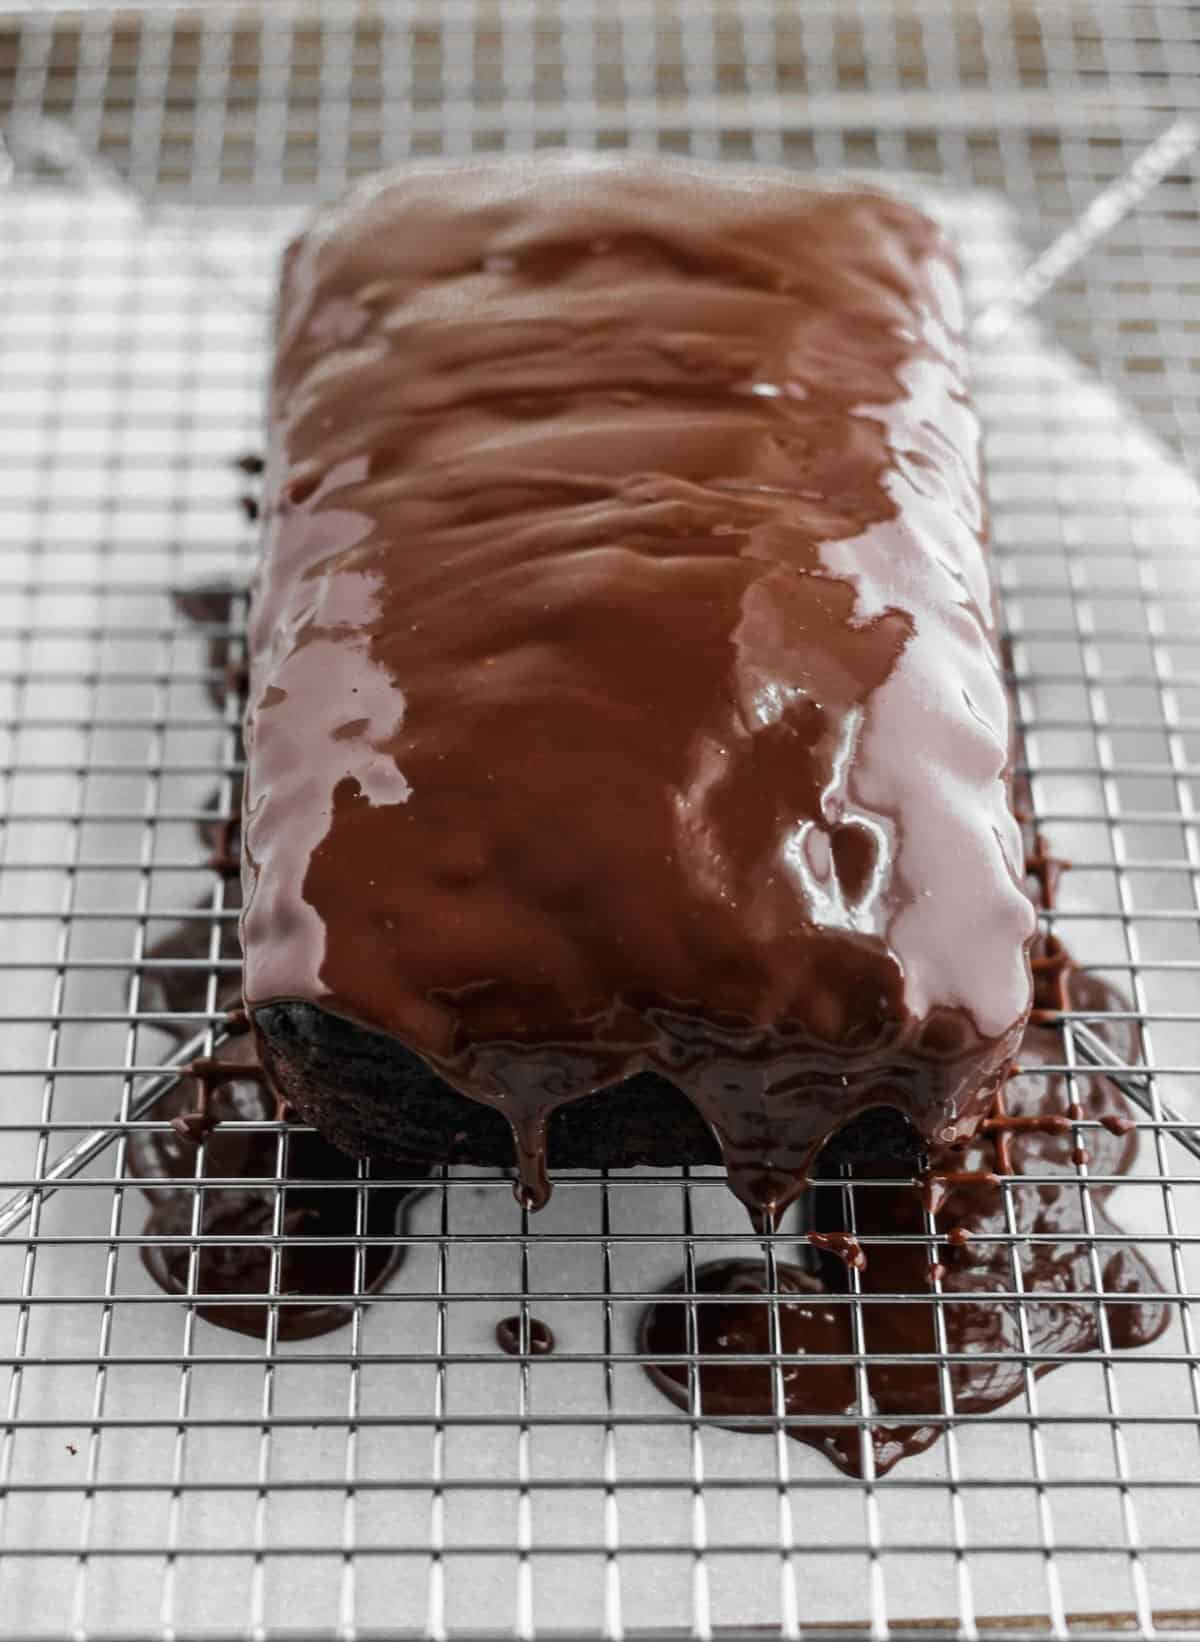 Chocolate glaze poured over the chocolate zucchini bread on top of a wire cooling rack.